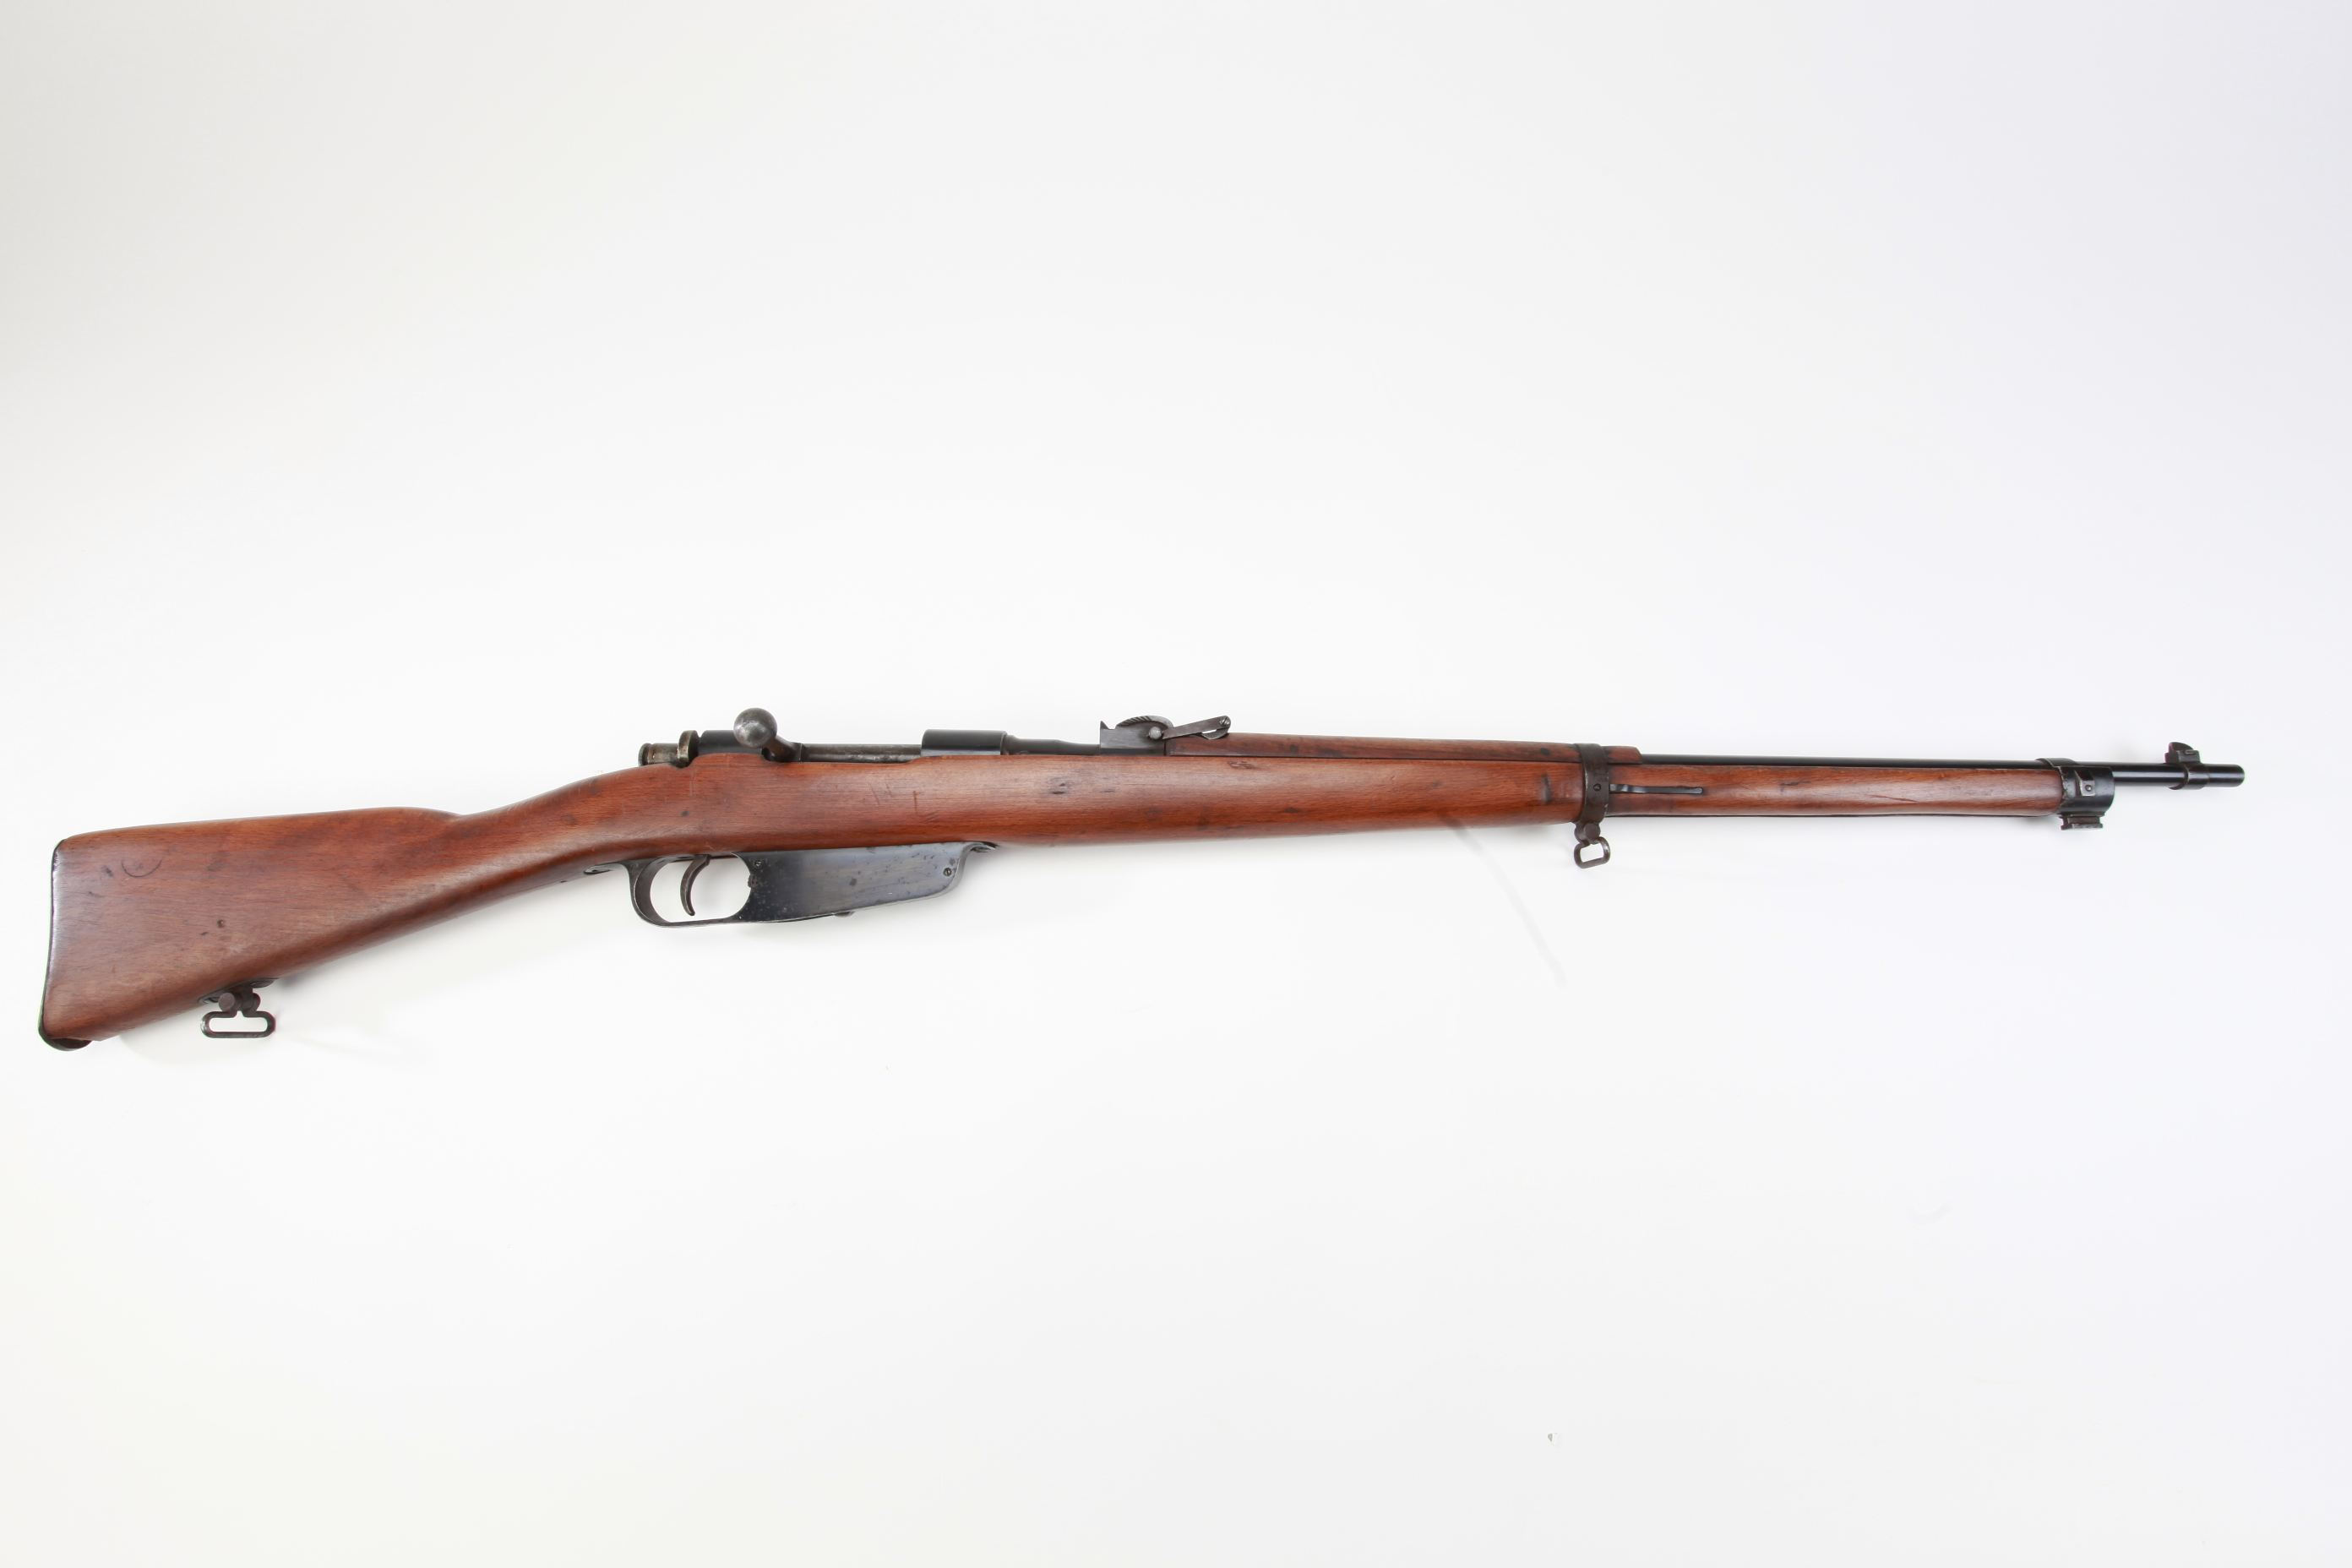 Mannlicher Carcano Model 41 Bolt Action Rifle